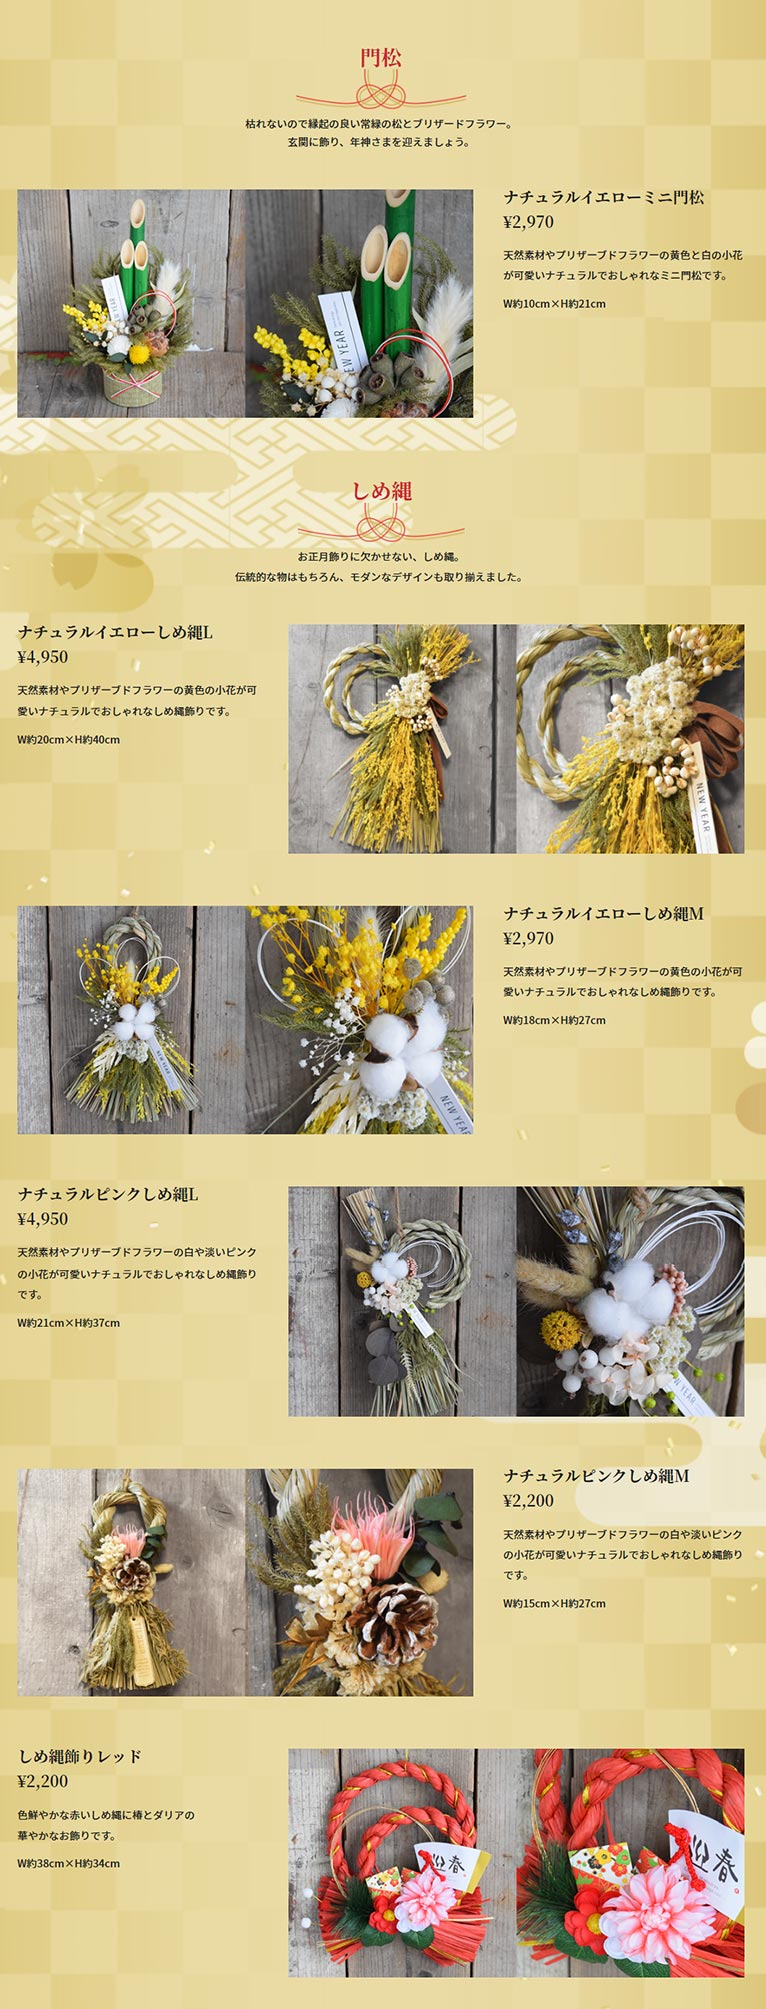 2021New Year Flower Gift はこねフローリスト